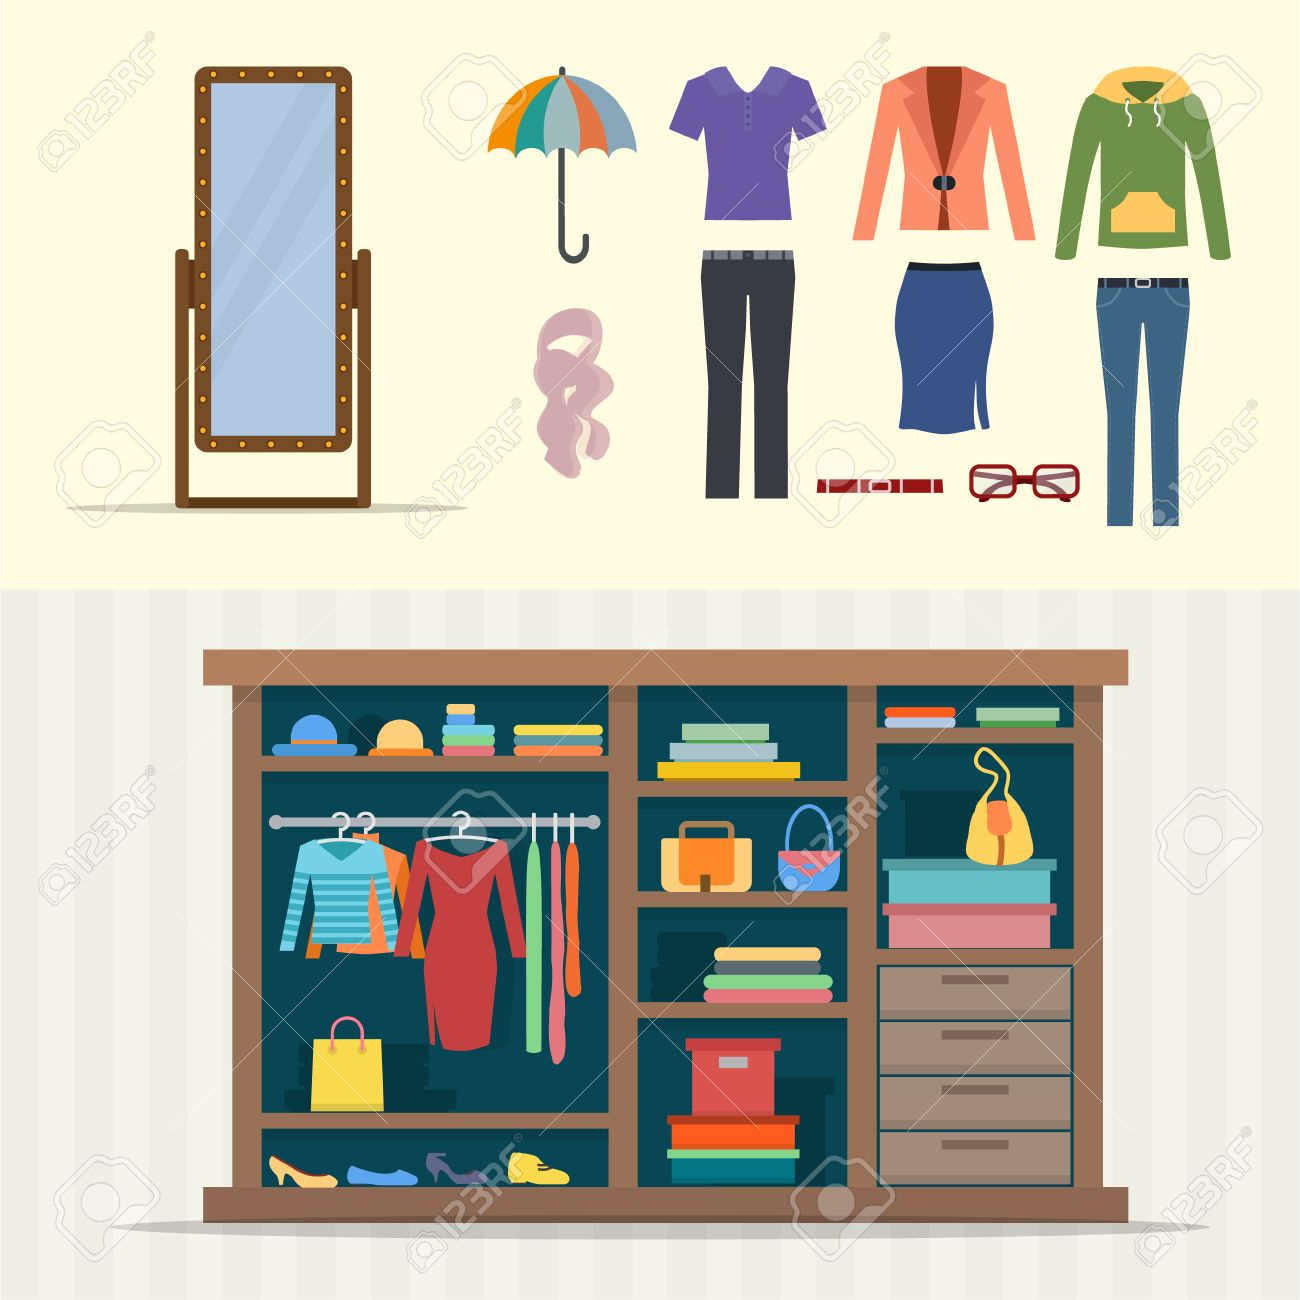 Vector   Wardrobe For Clothes. Closet With Clothes, Bags, Boxes And Shoes.  Mirror And Cloths Sets. Flat Style Vector Illustration.